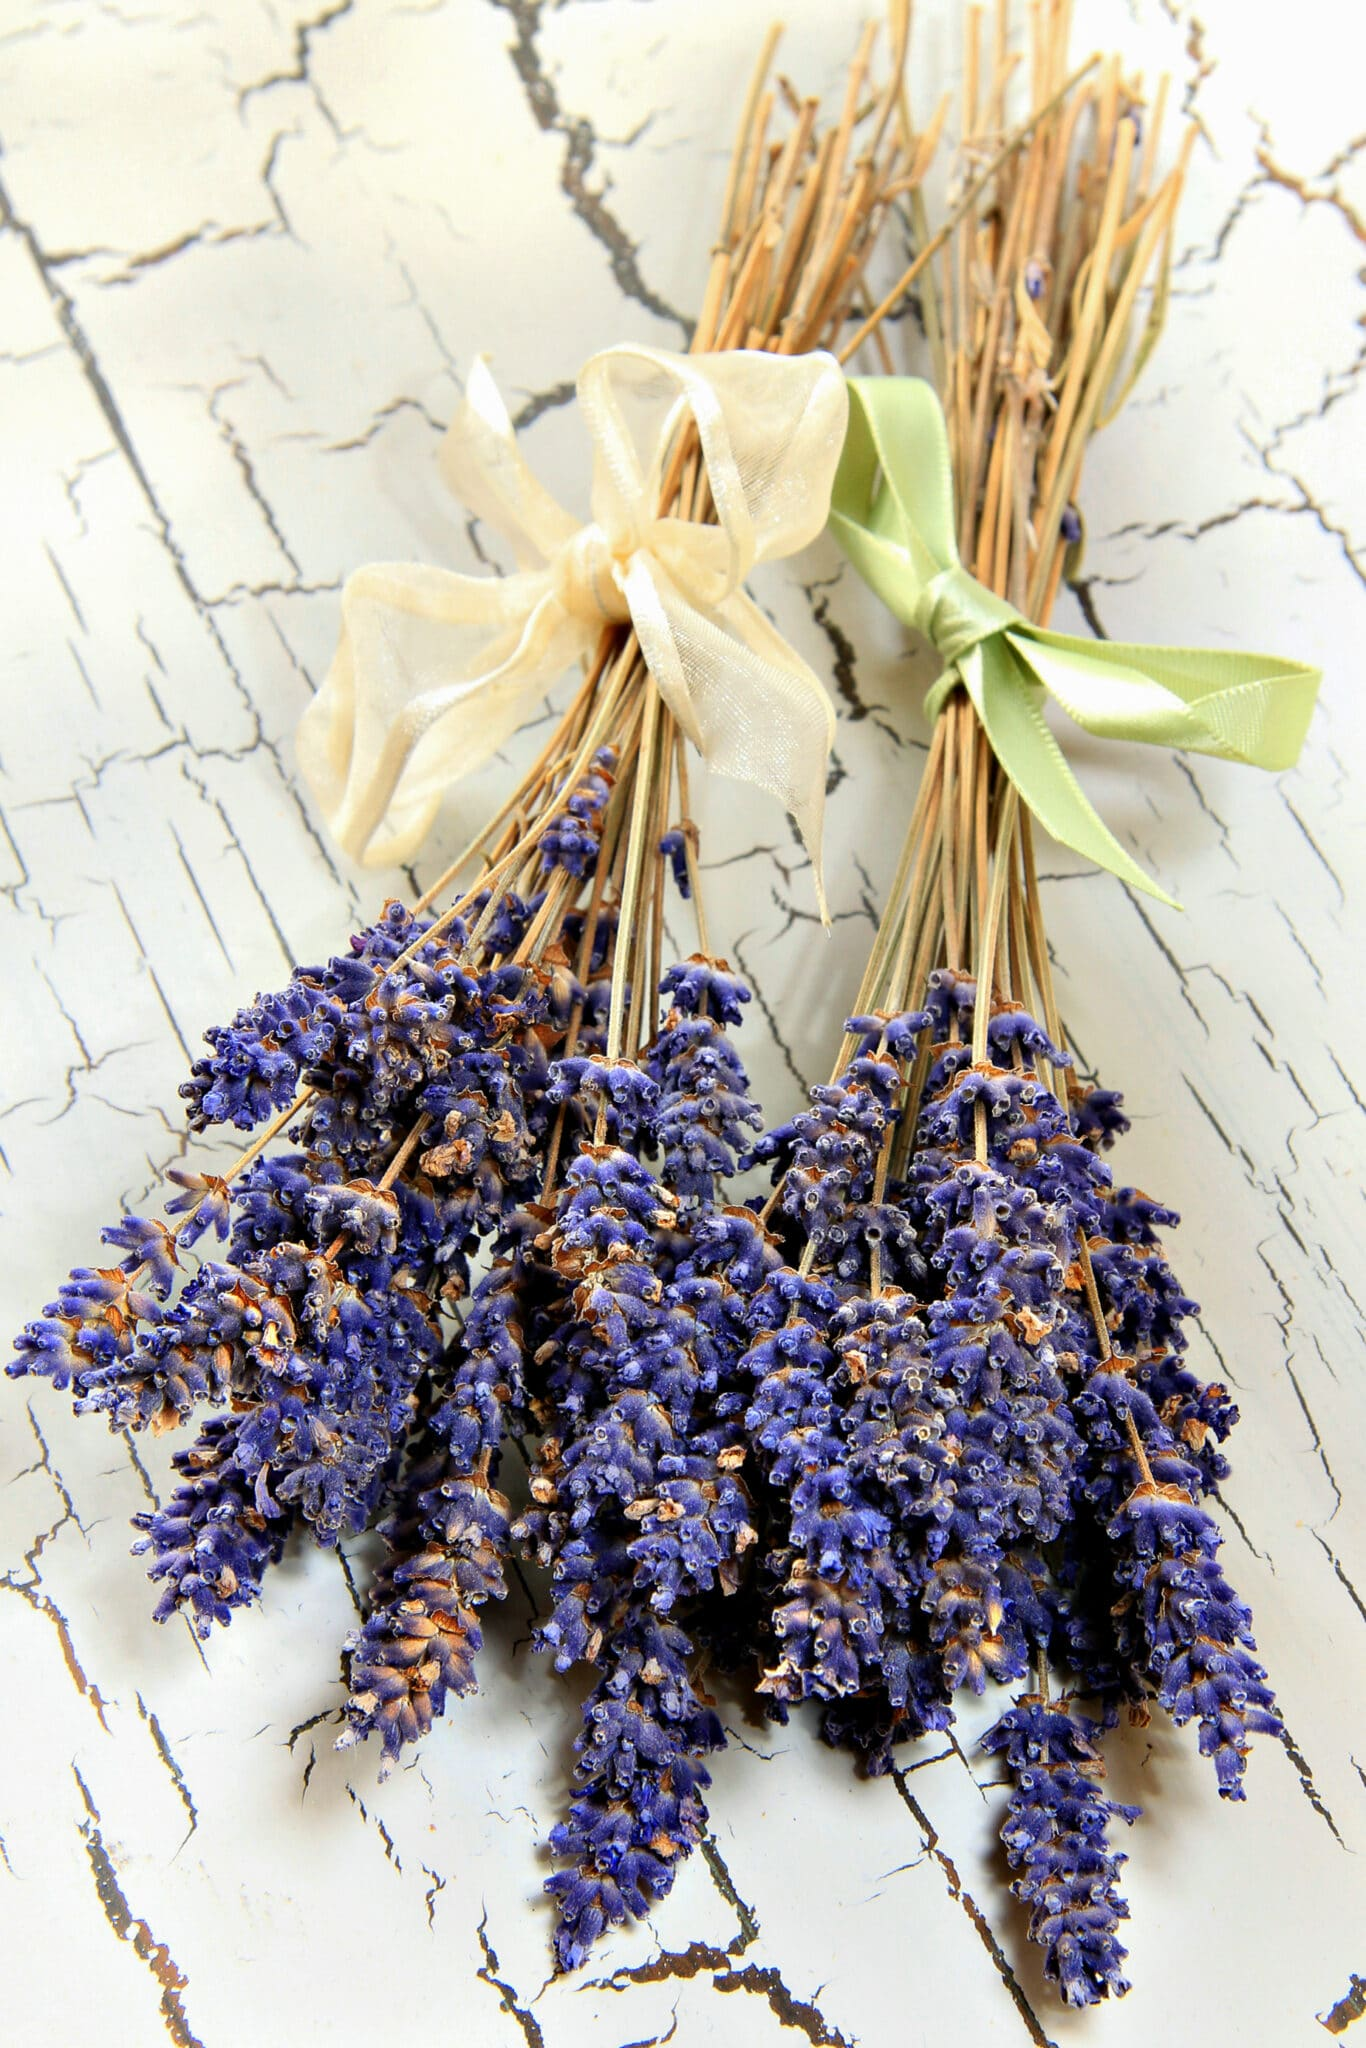 Dried lavender bunches on a rustic white table top.